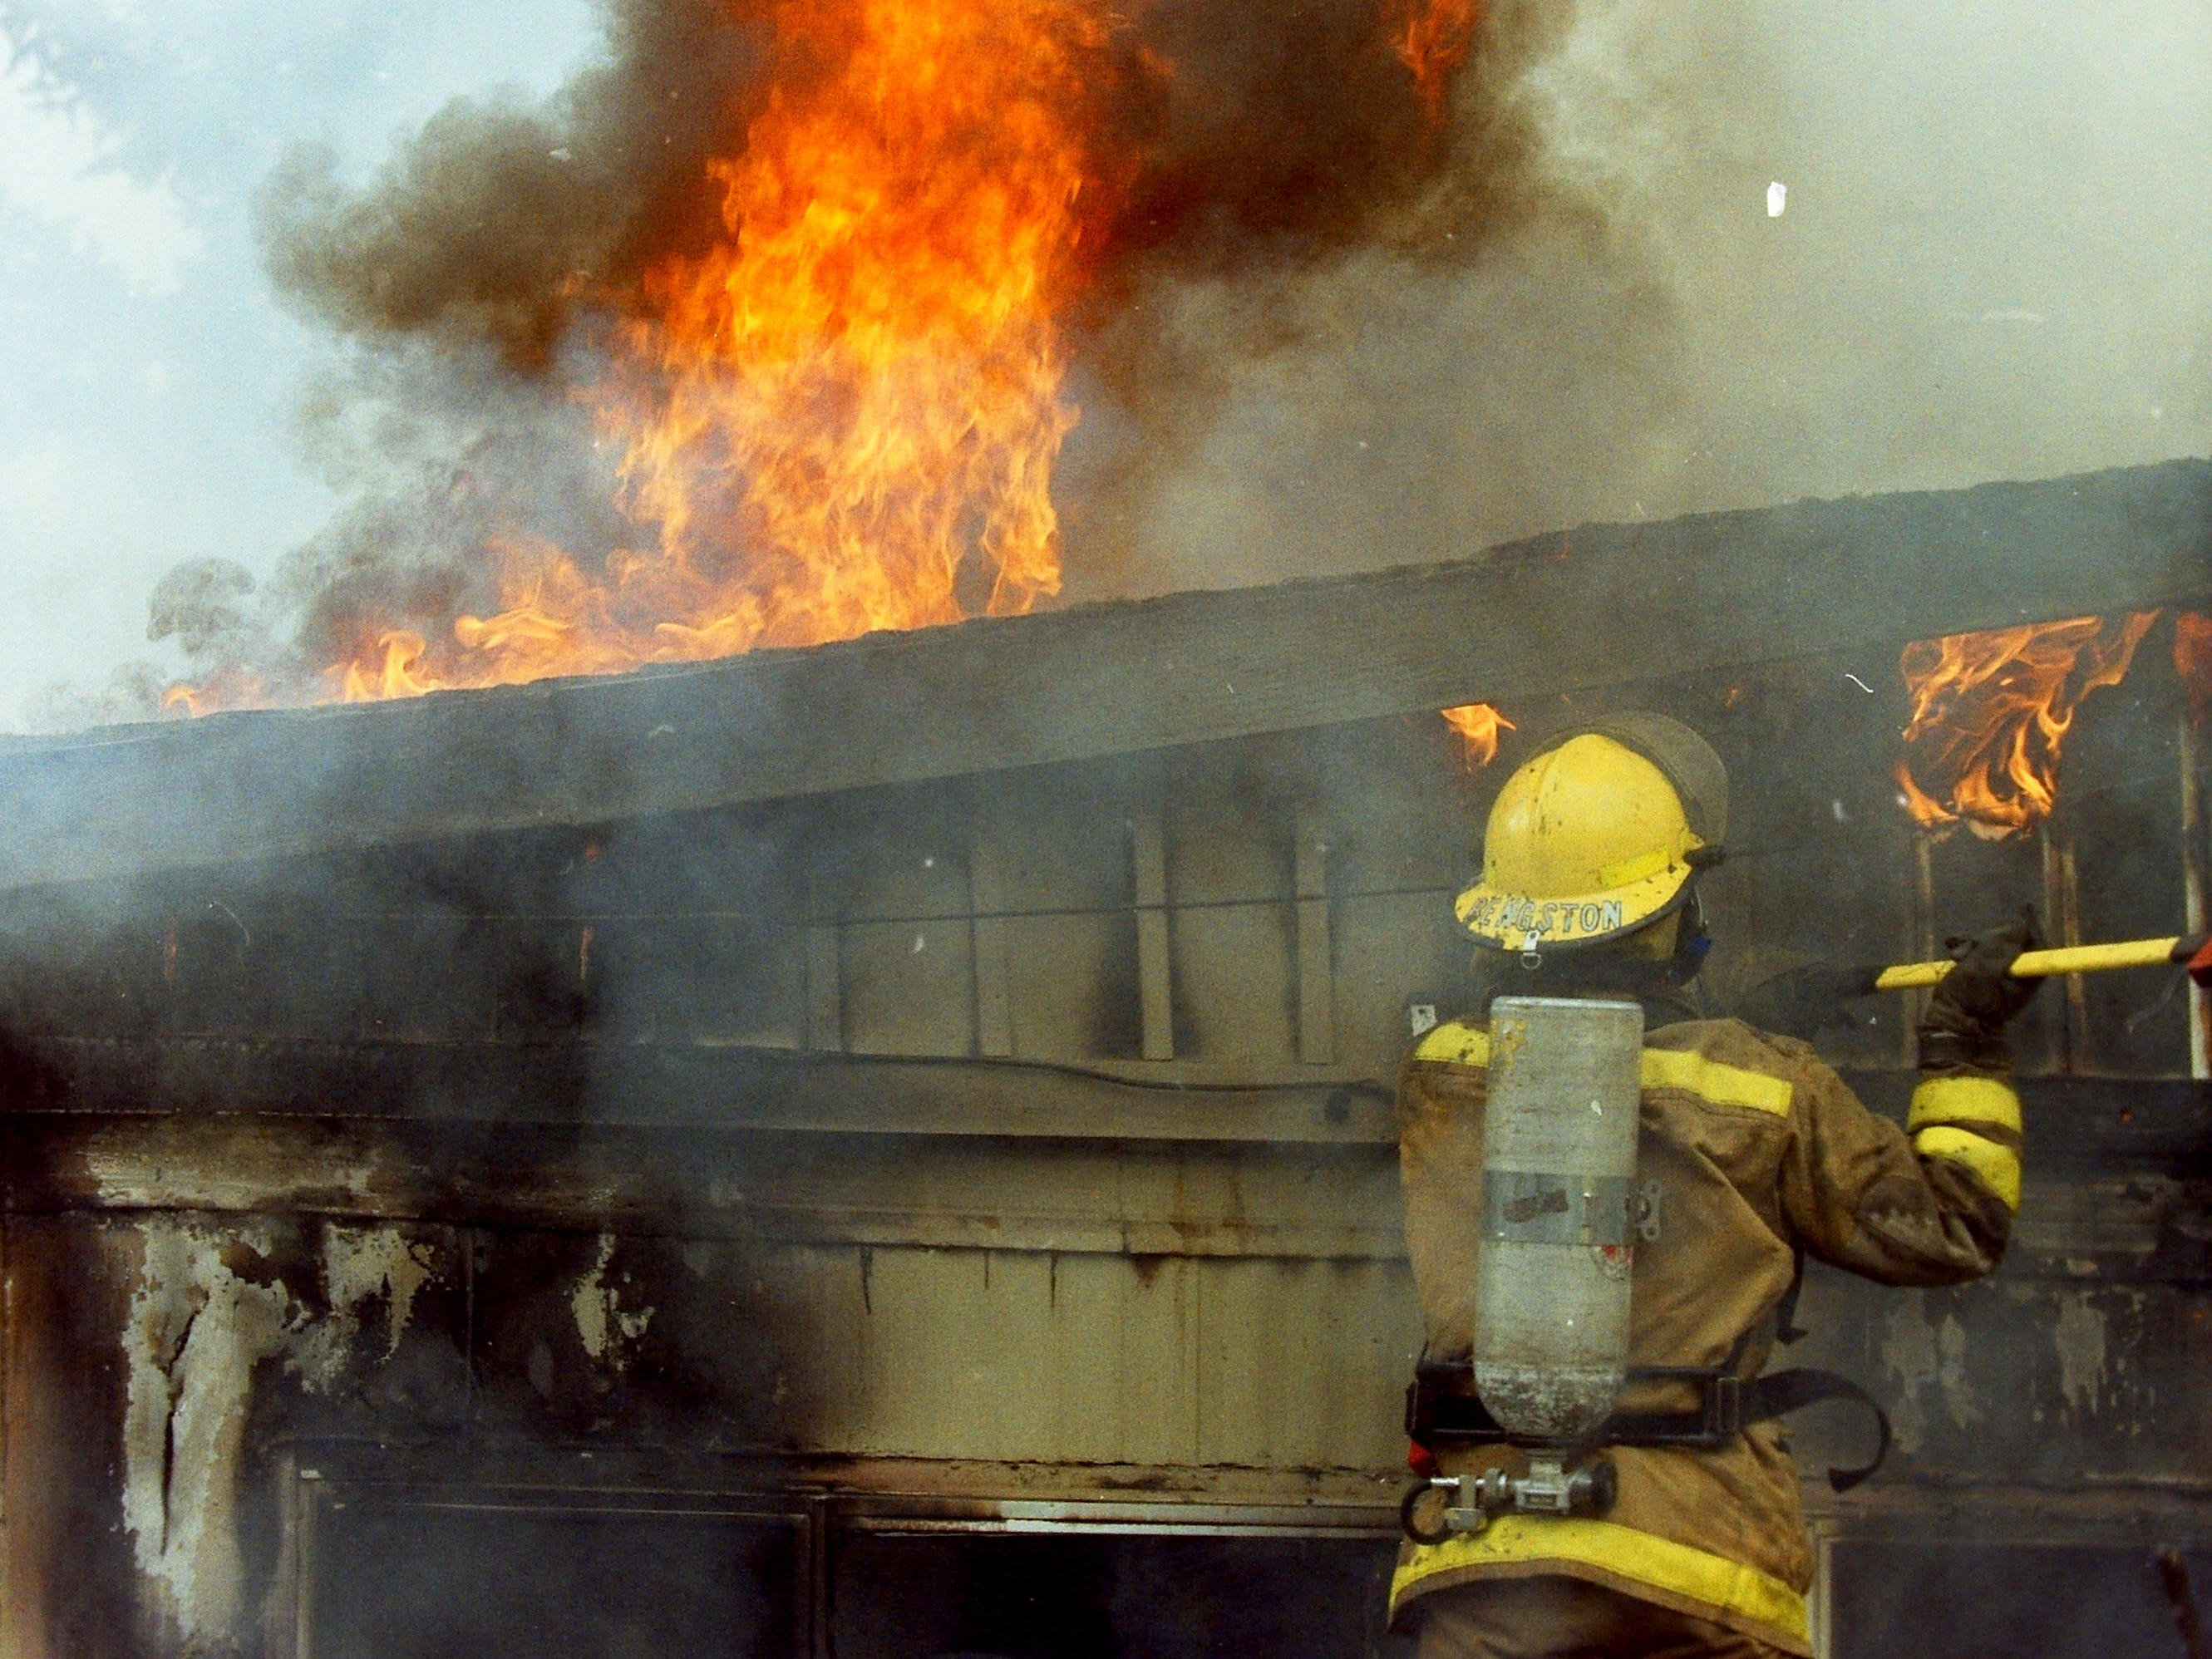 11/08/92